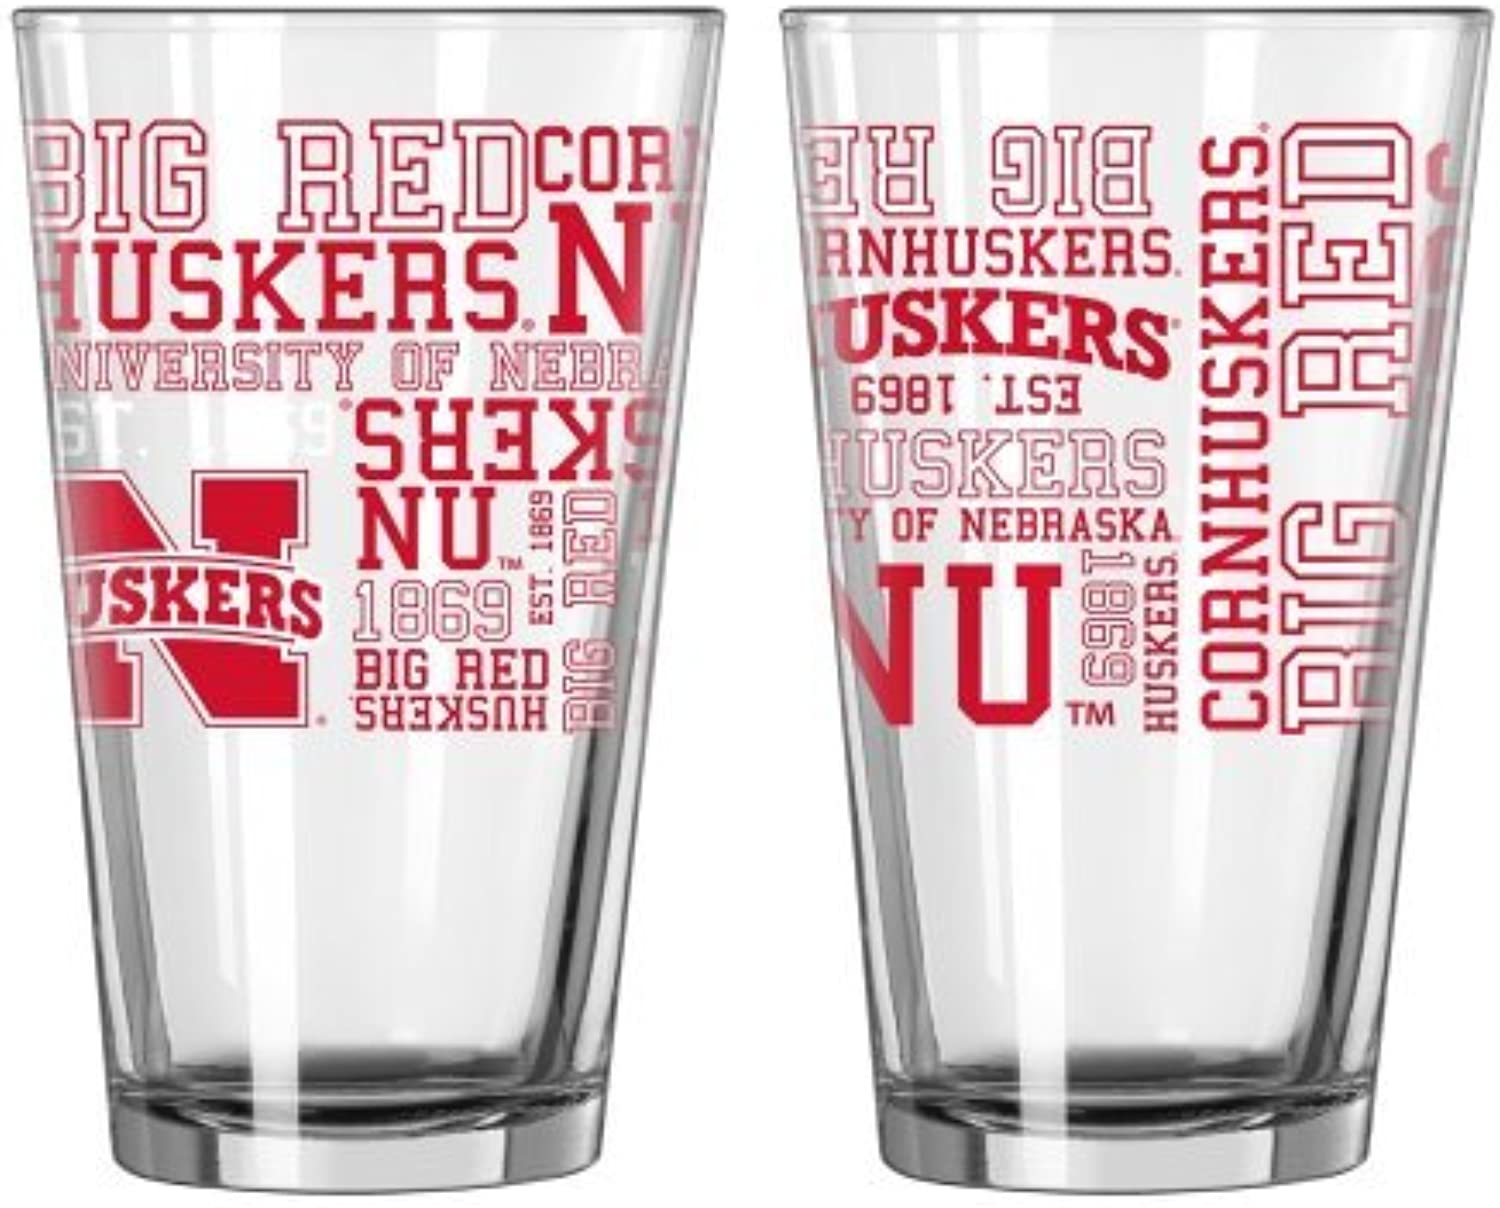 NCAA NebraskaSpirit Pint Glasses (2)   Nebraska Cornhuskers 16 oz. Beer PintsSet of 2